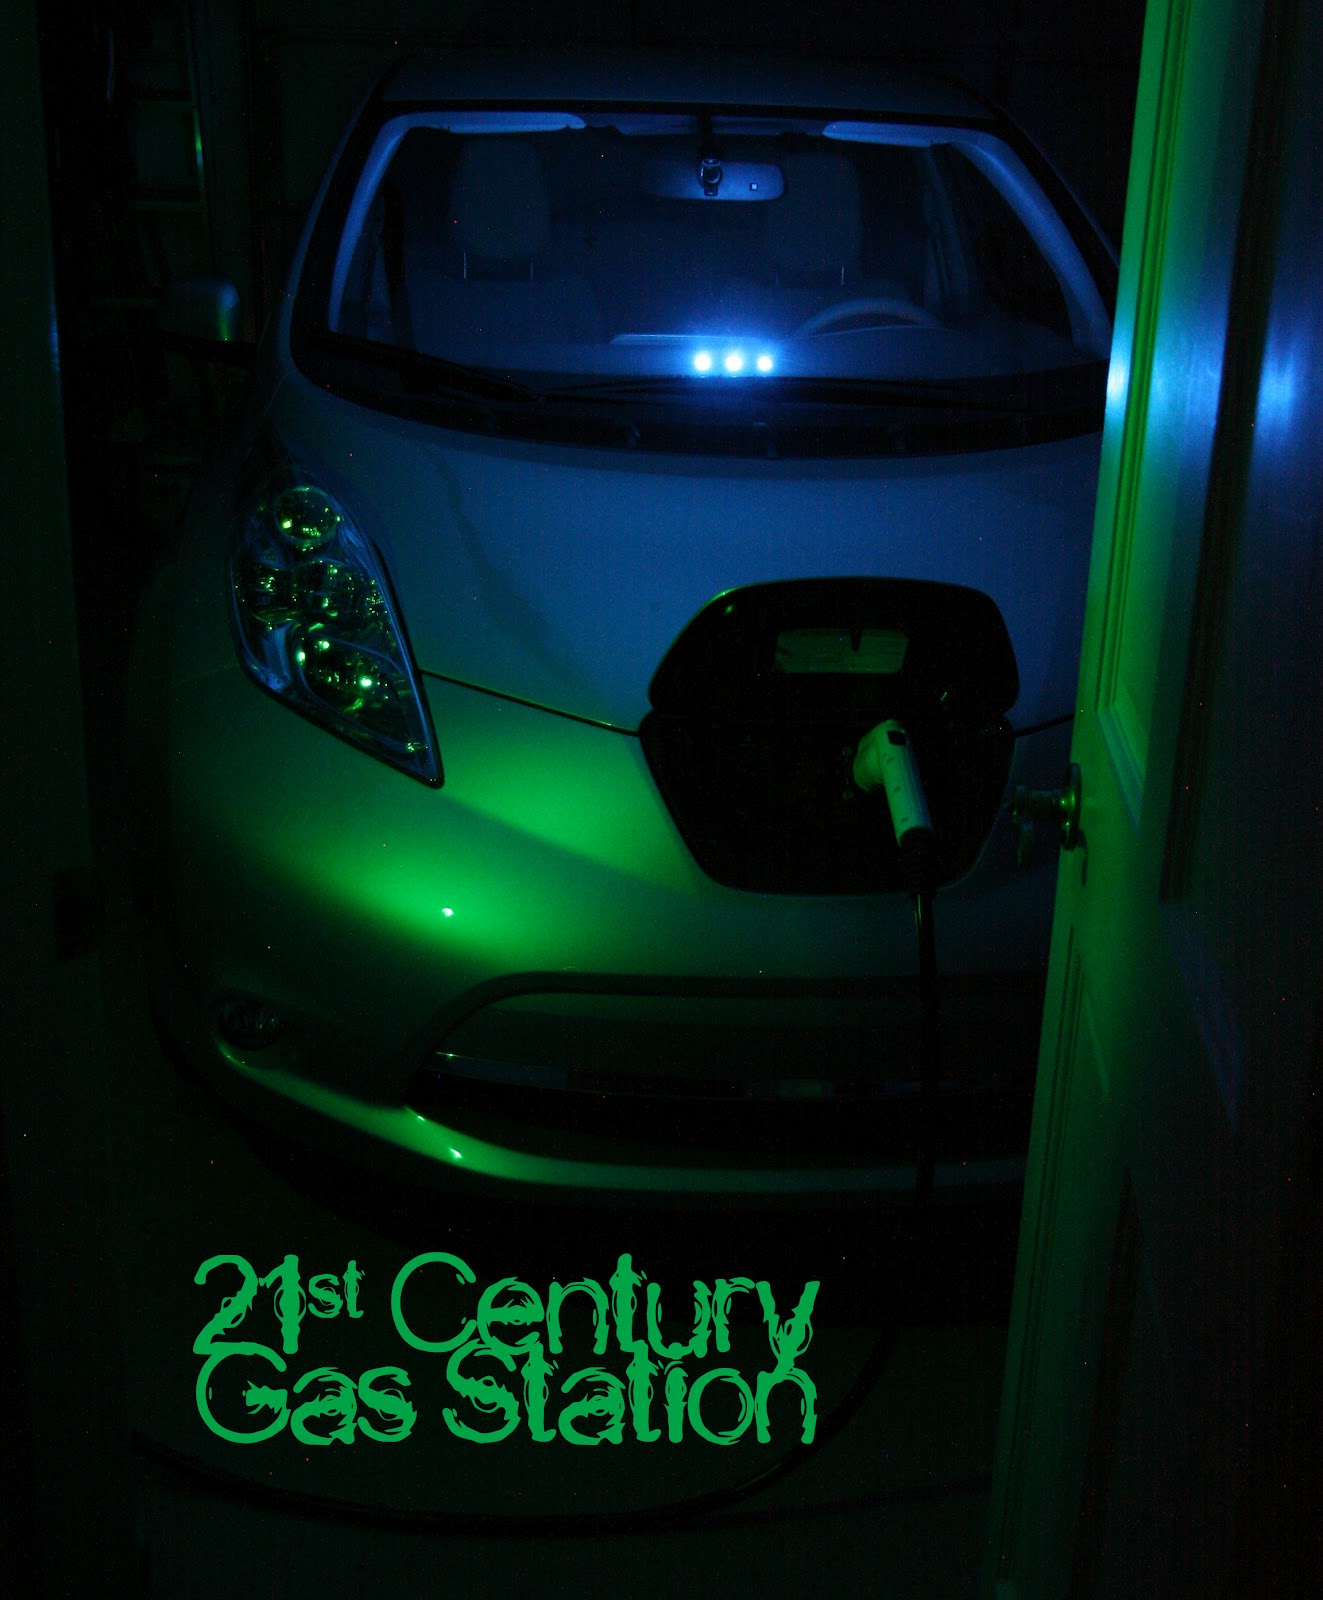 I Installed A Schneider Ev2430ws Evse In My Garage And It Takes Me 10 Seconds To Plug Car On Way The House Certainly Don T Miss Pumping Or